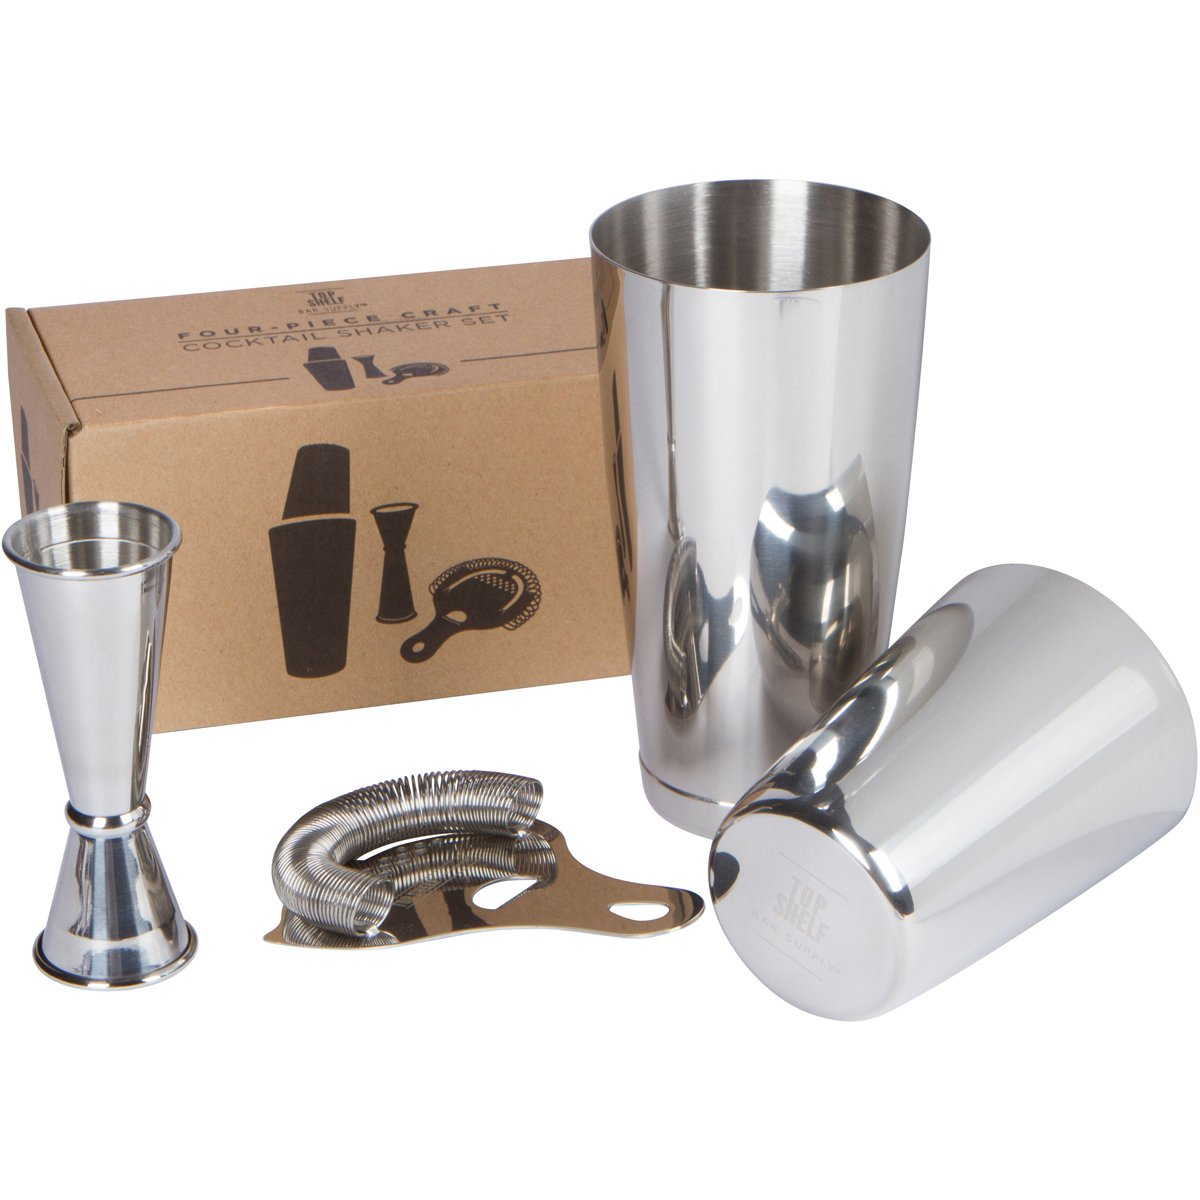 Boston Shaker Set: Professional two-piece Stainless Steel Cocktail Shaker set with Hawthorne Strainer and Japanese Jigger Top Shelf Bar Supply